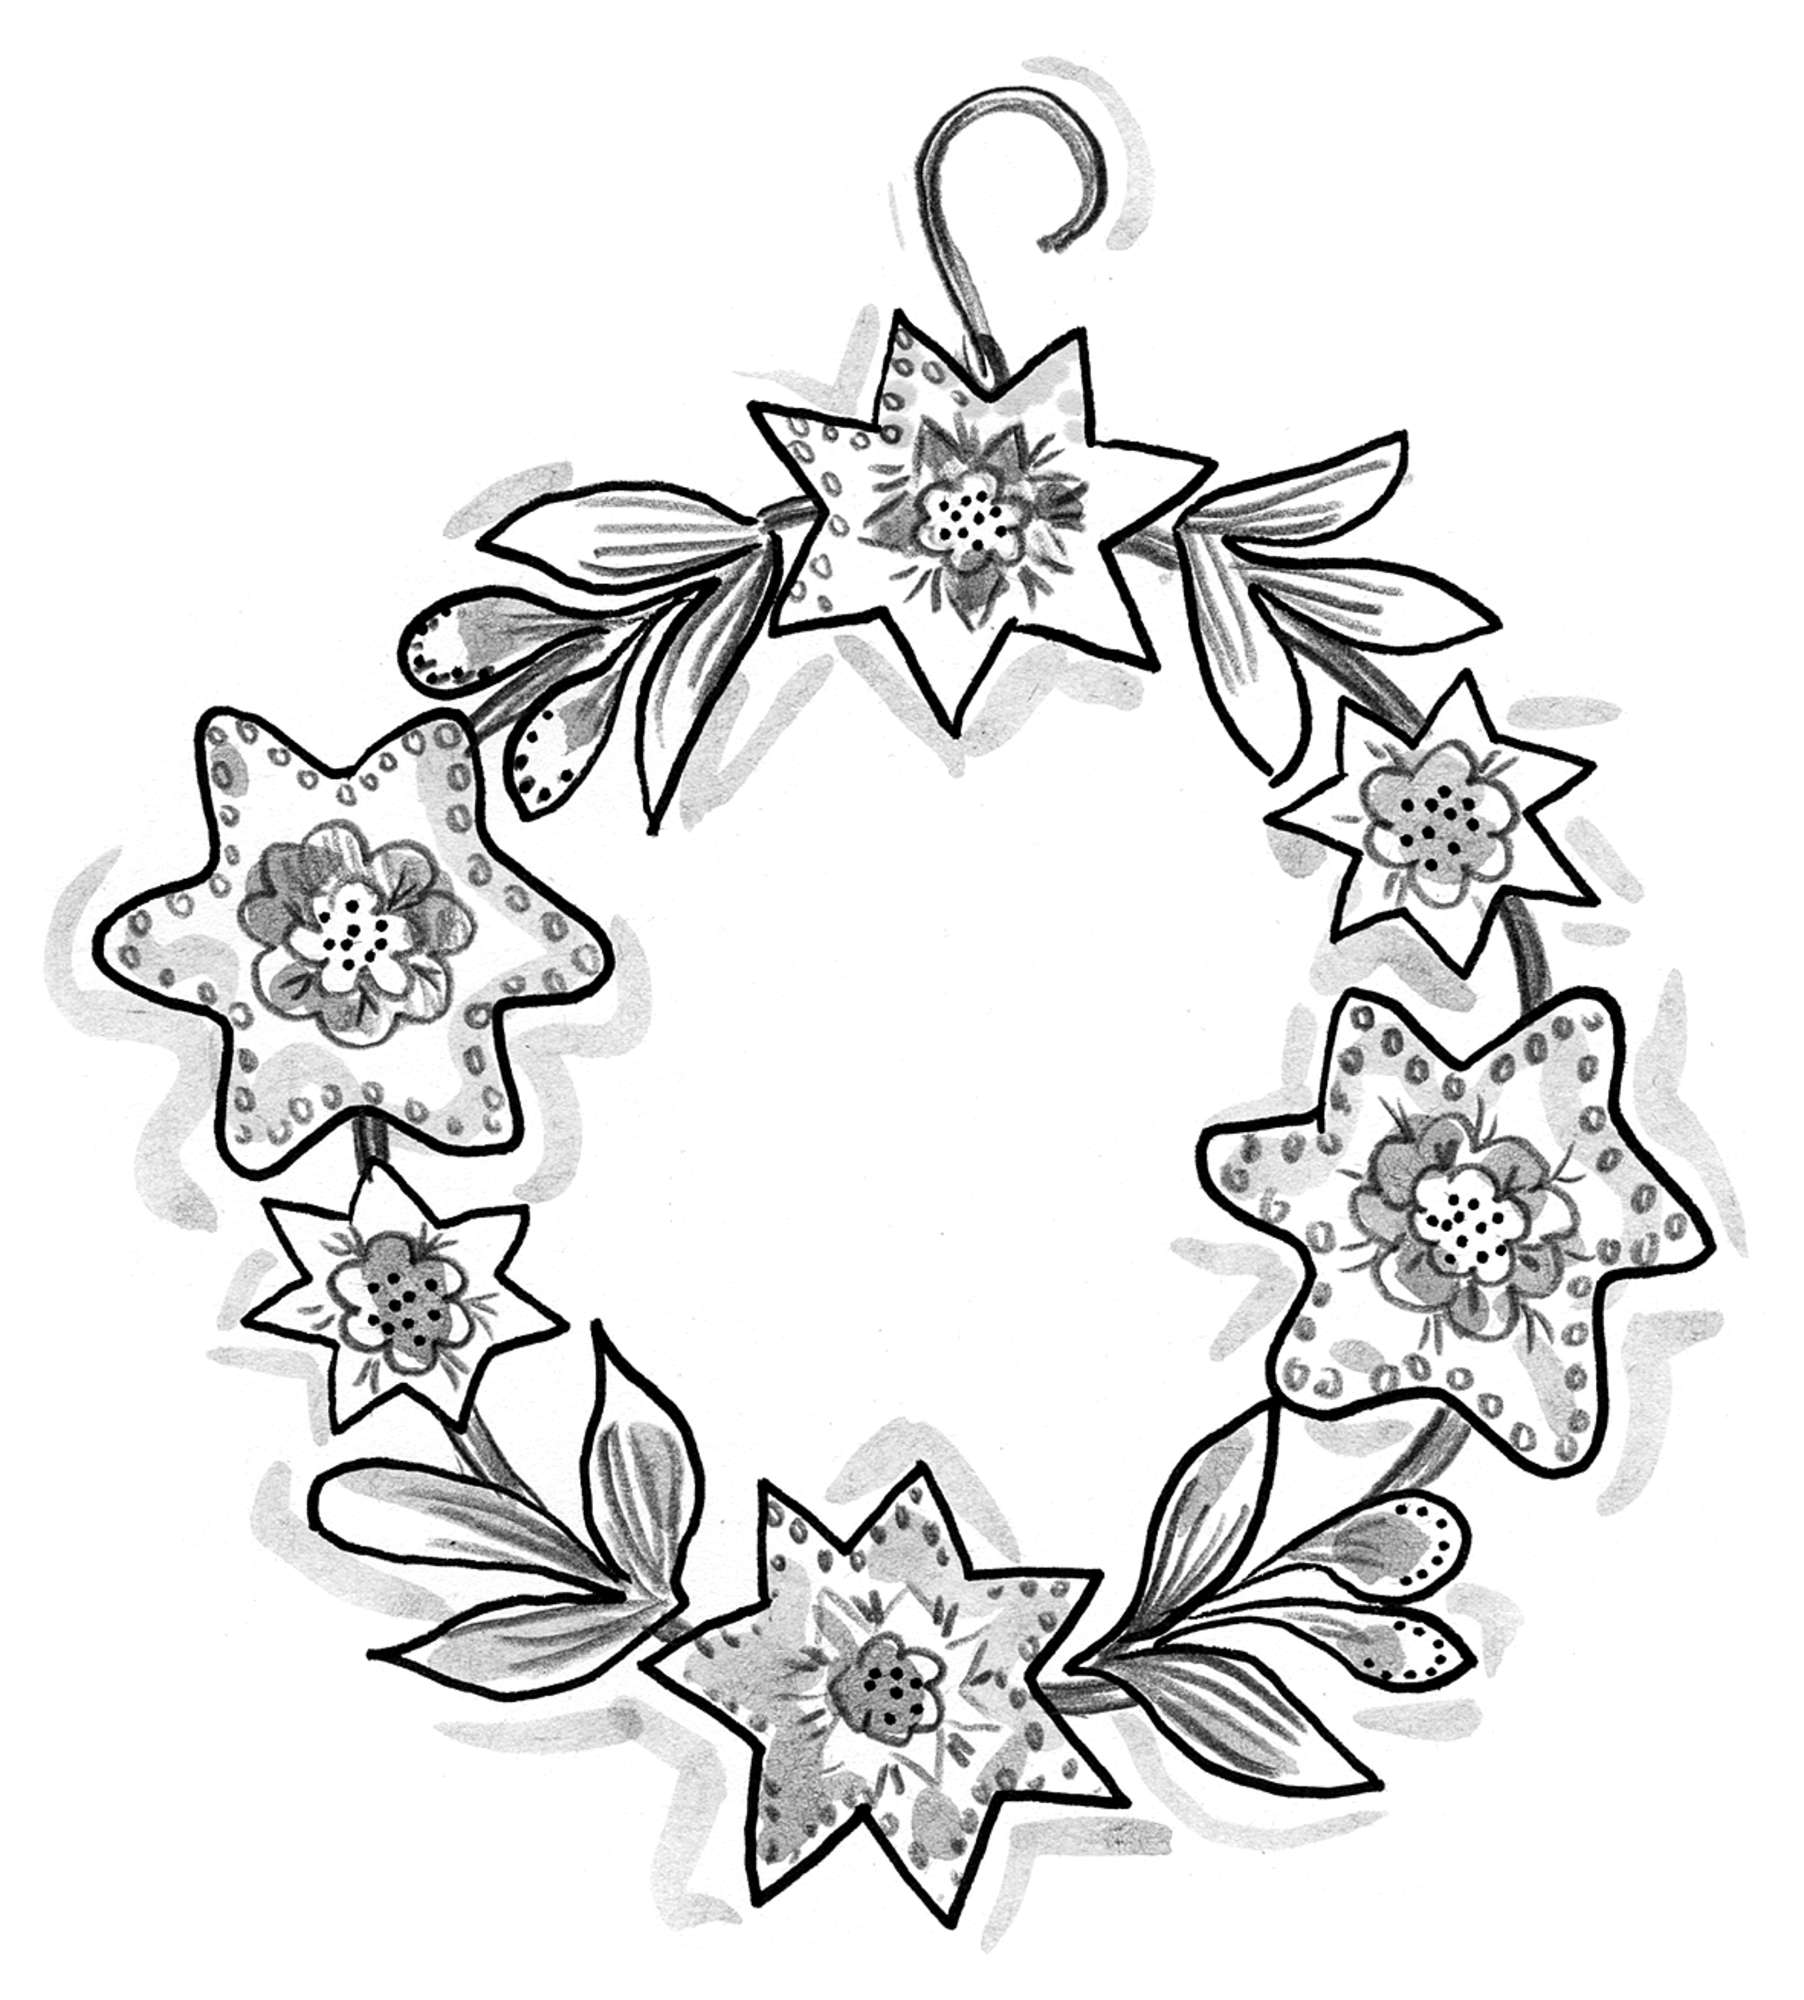 """Julros"" metal wreath"